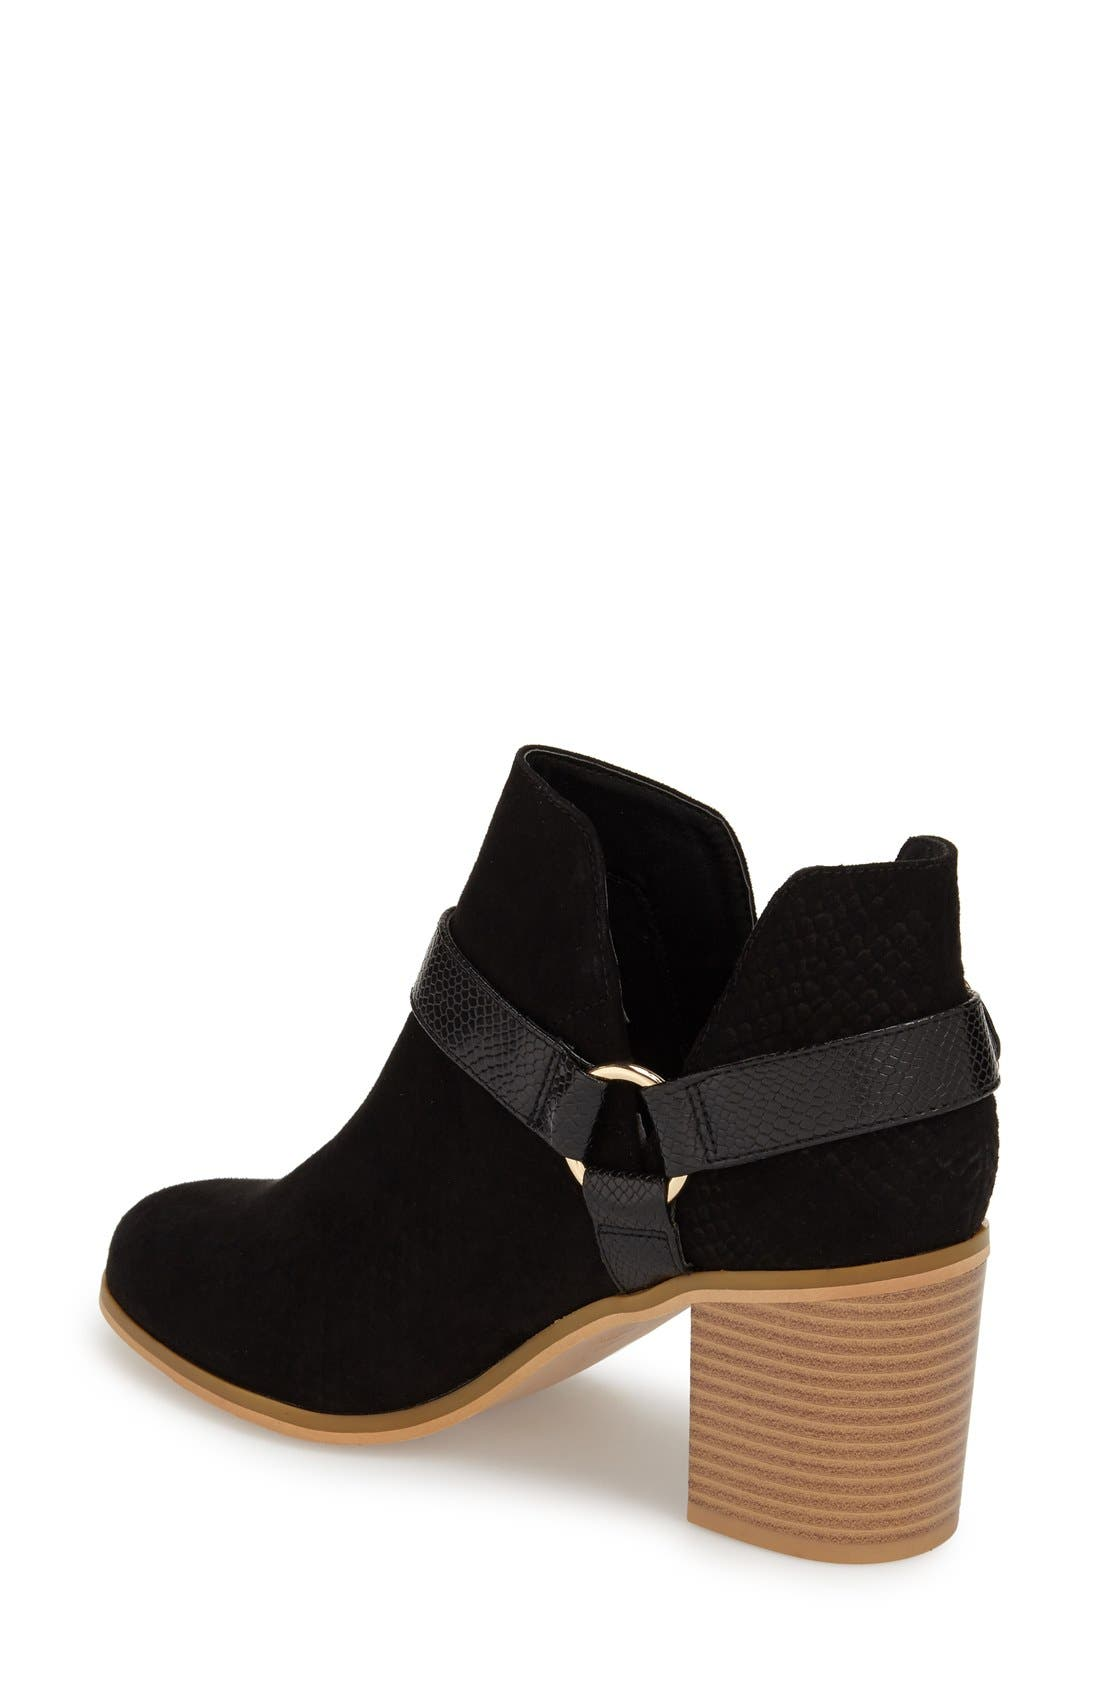 Alternate Image 2  - Topshop 'Beckley' Ring Strap Bootie (Women)